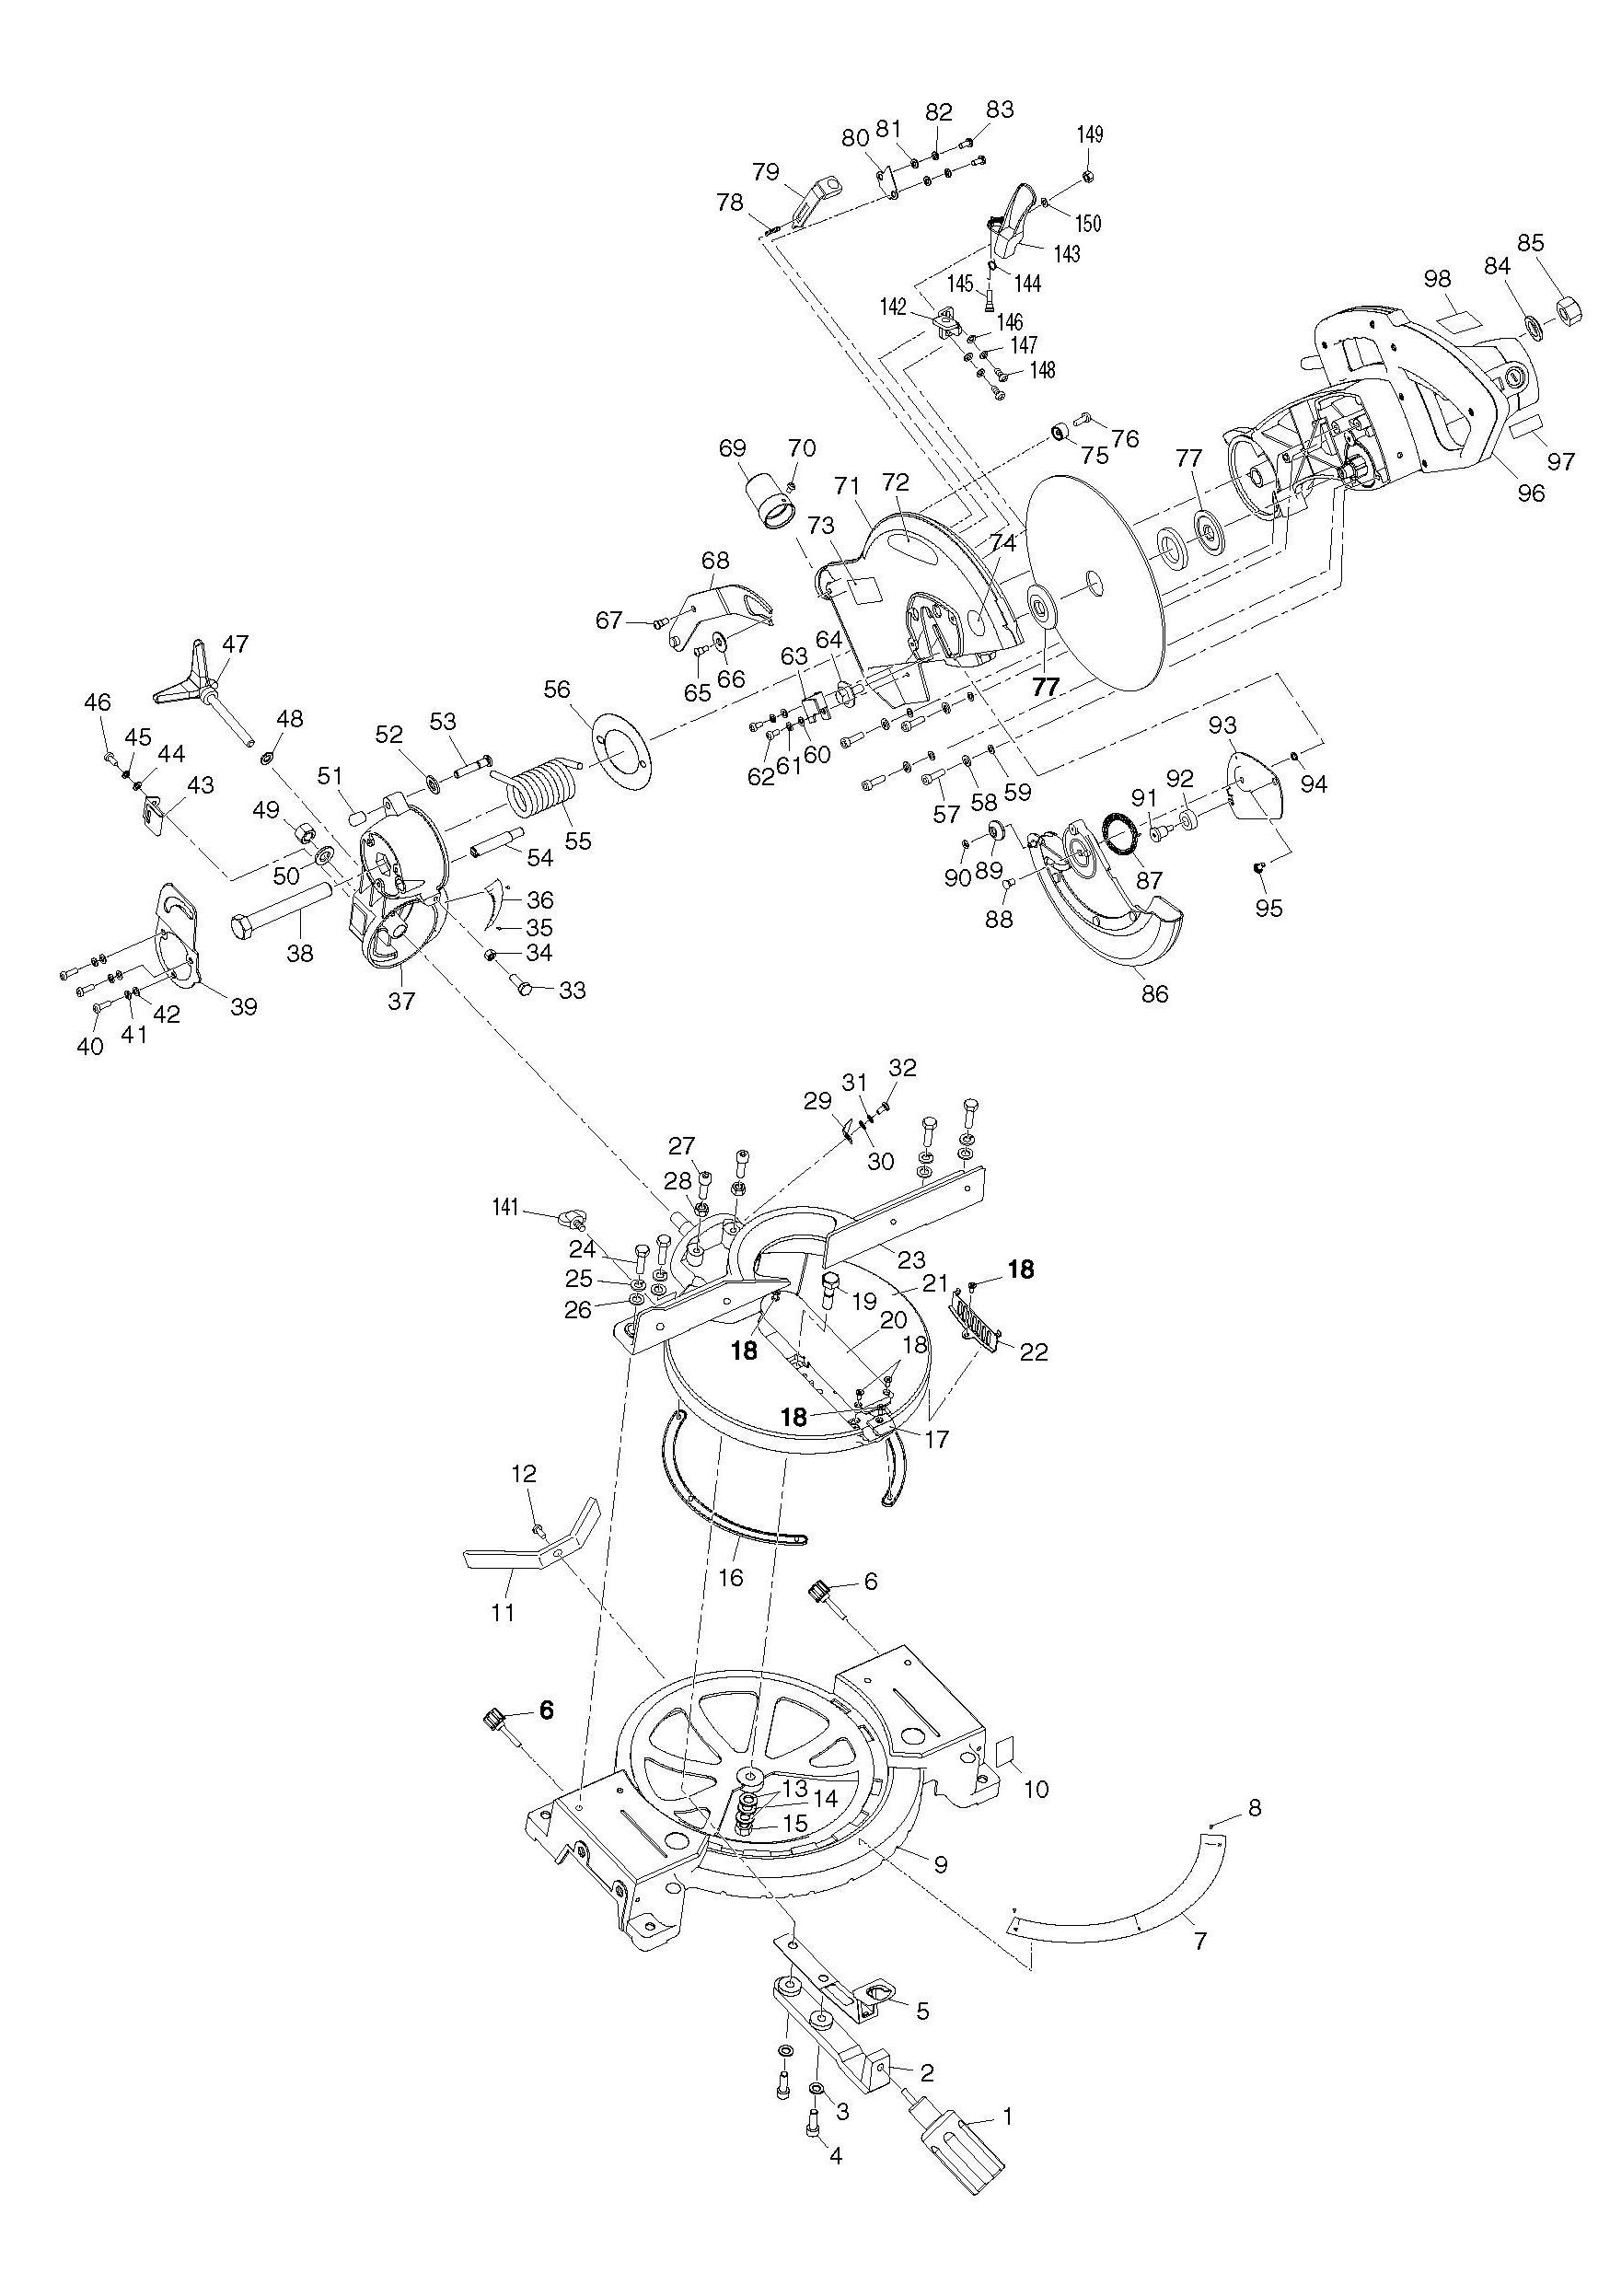 Royal Enfield Bullet Engine Diagram further 3015 furthermore Harley Sportster Ironhead Engine together with Motorcycle Fuel Line Replacement additionally 4 Pin Fan Connector. on harley davidson wiring diagram manual 1964